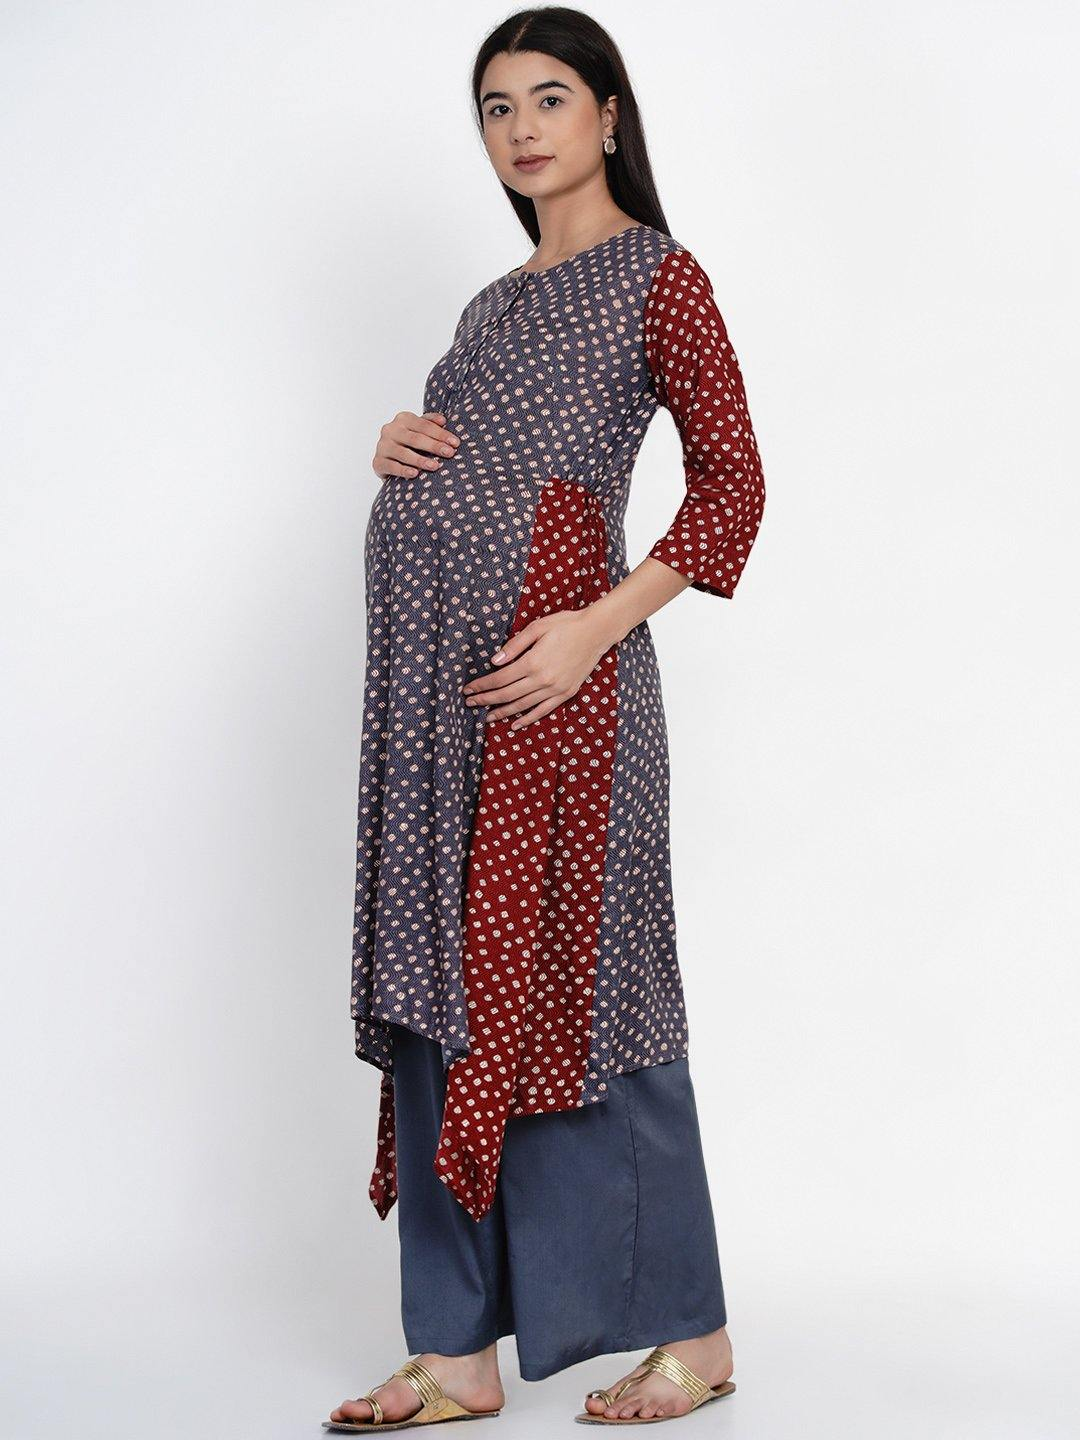 Mine4Nine - Kurta - Mine4Nine Women's Grey Asymmetric Rayon Maternity Kurta